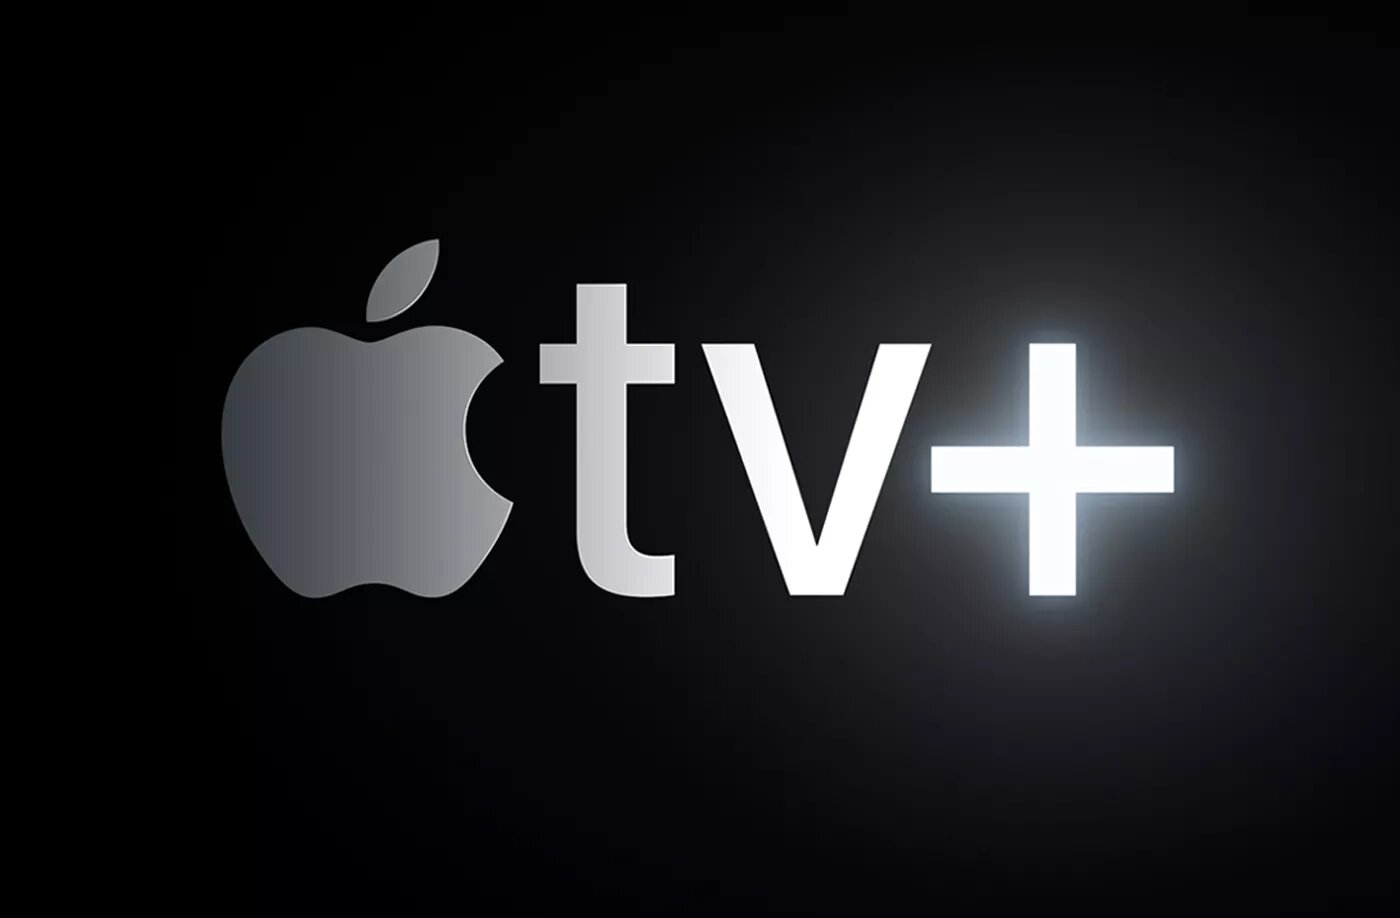 New Apple TV stuff could be coming